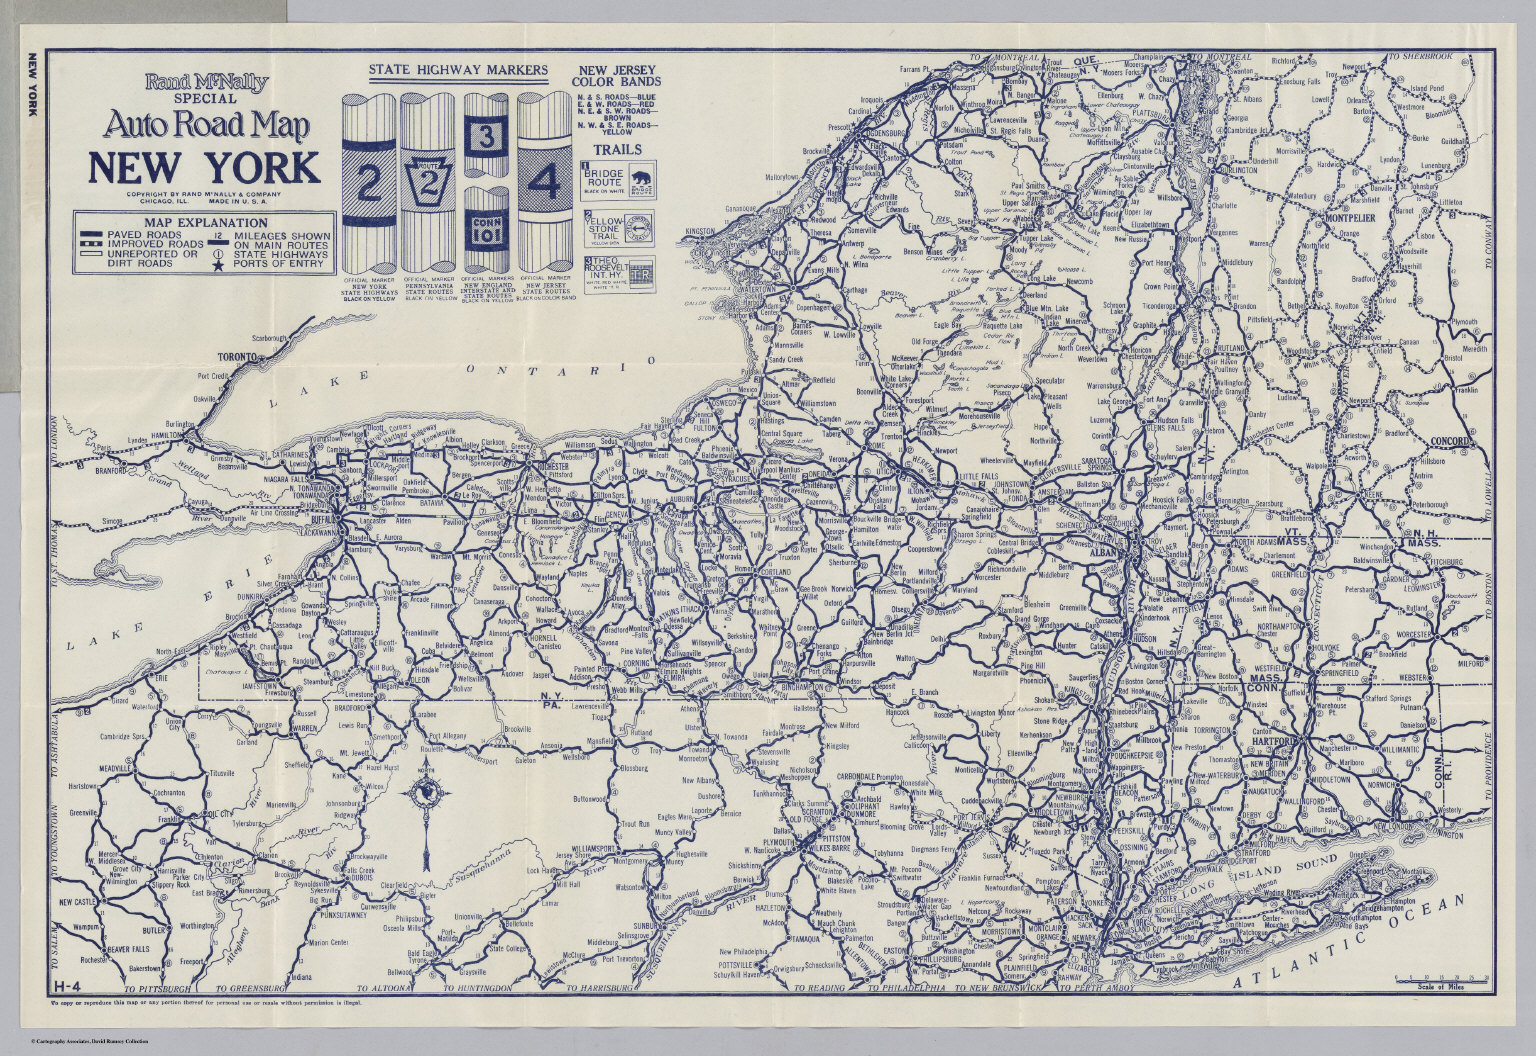 Auto Road Map New York David Rumsey Historical Map Collection